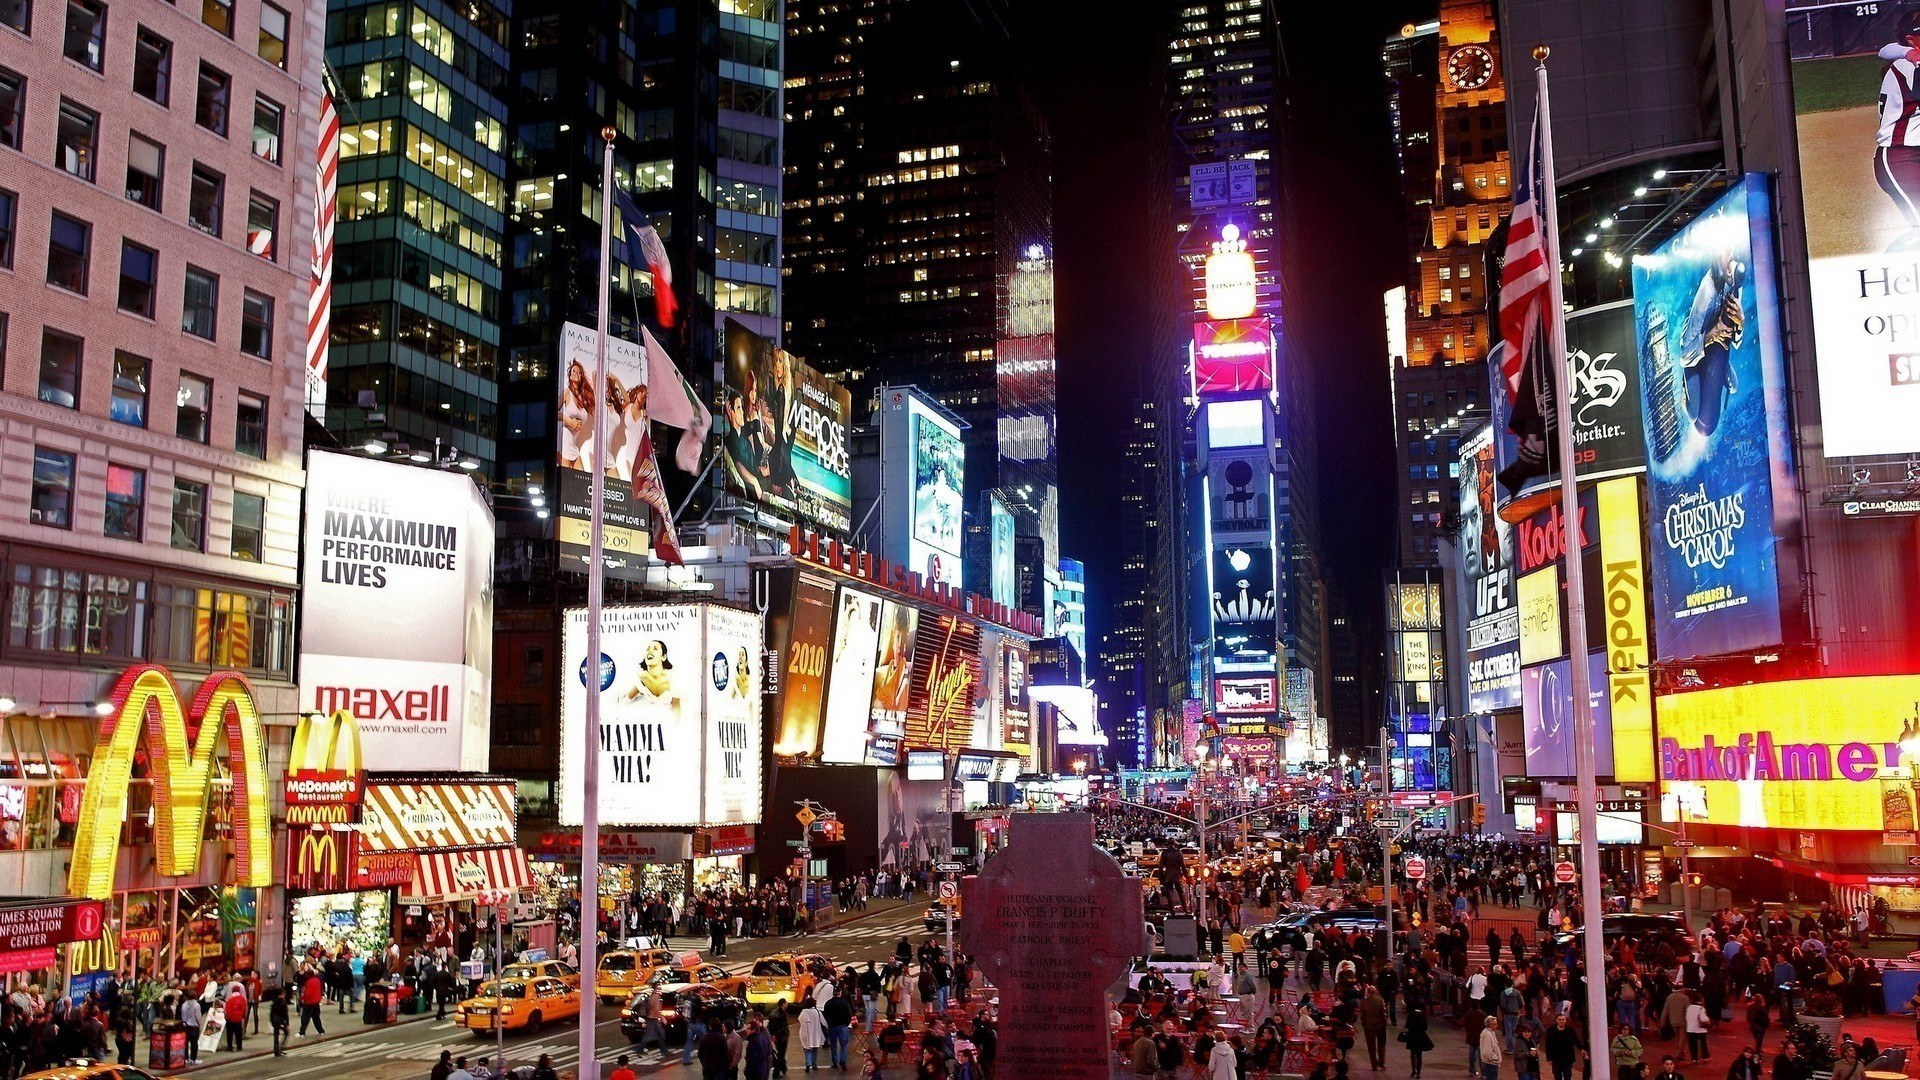 new-york-city-street-night-wallpaper-high-resolution-0zuic